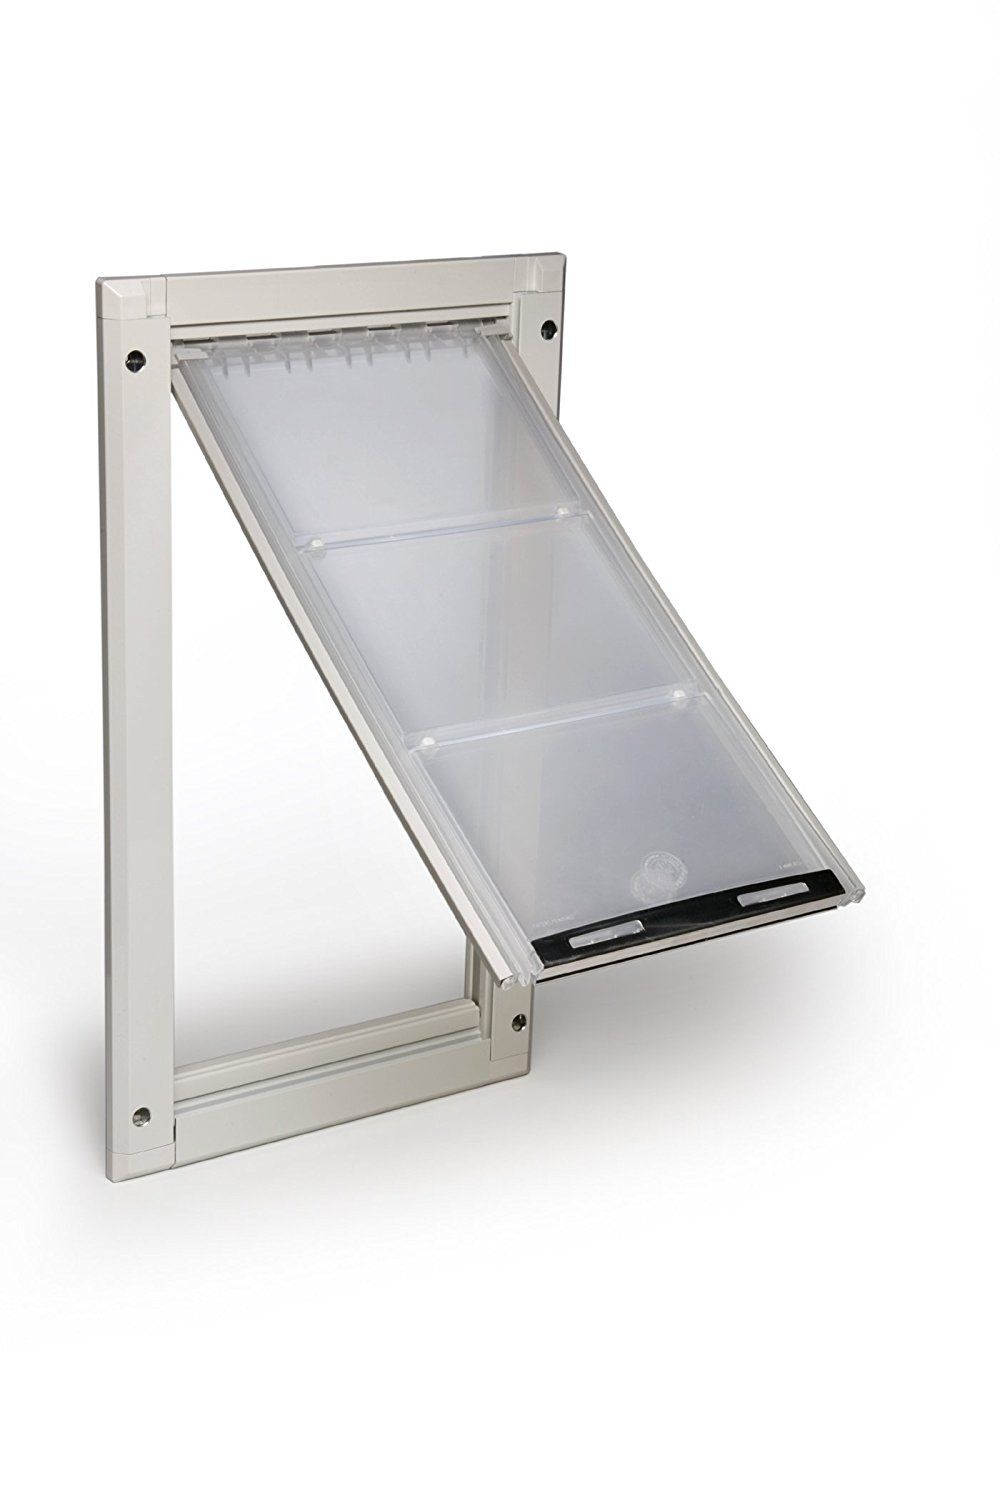 Endura Flap Insulated Dog Door For Kennels And Dog Houses More Info Could Be Found At The Image Url This Is An Affiliate Link And I R Gatil Reforma Quarto